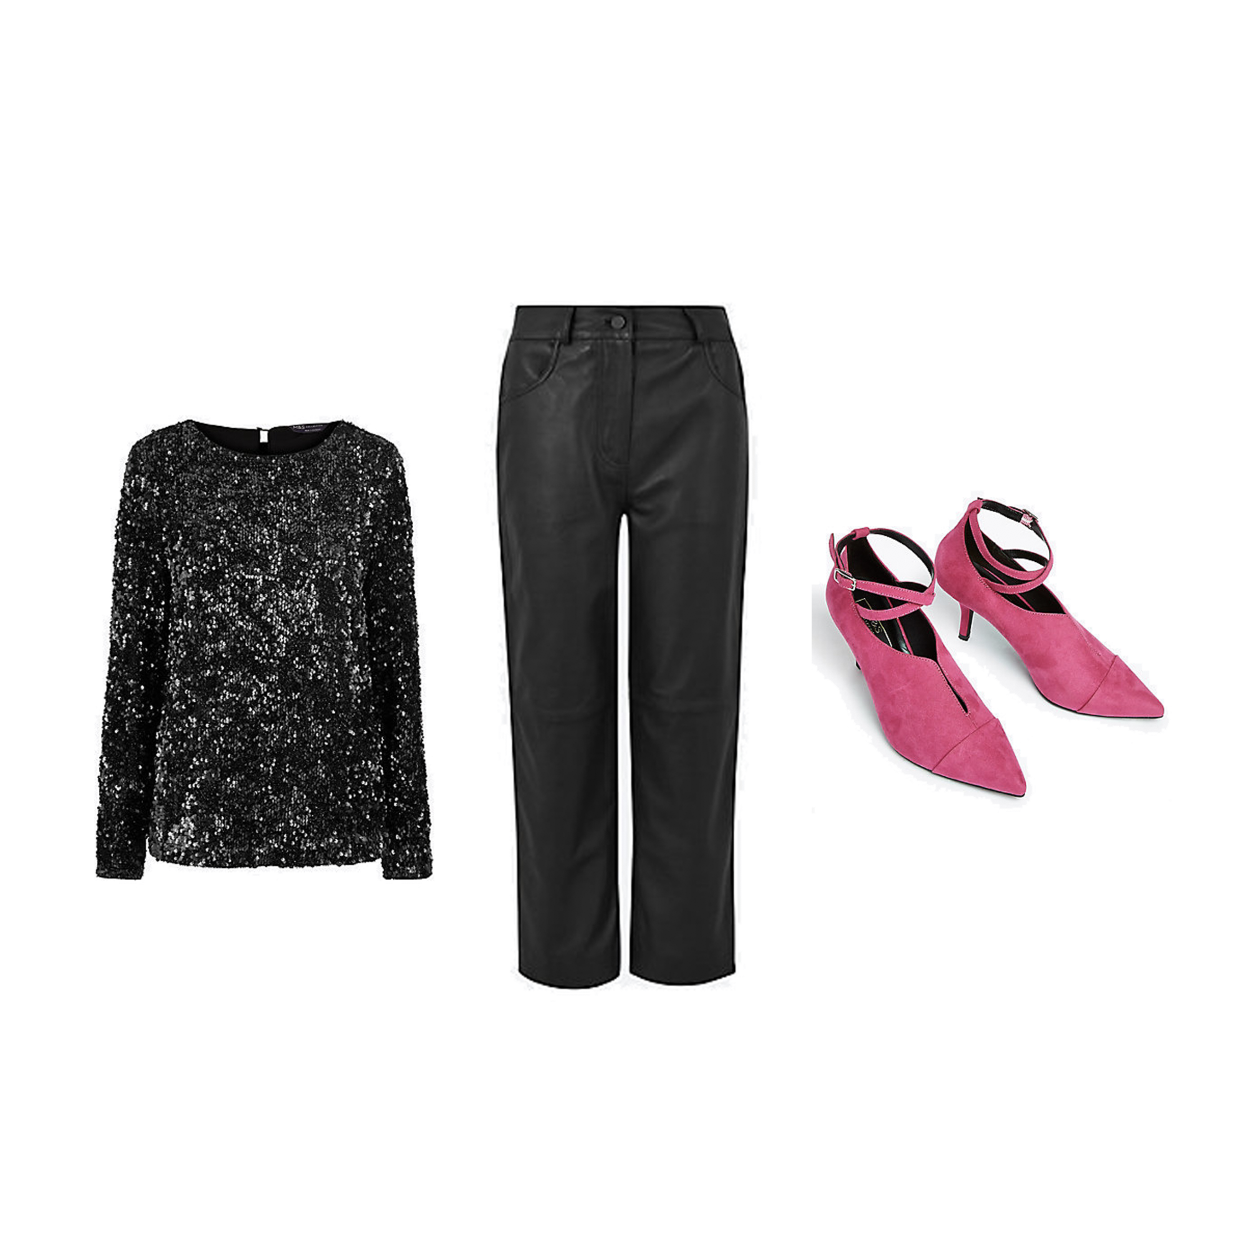 my midlife fashion, marks and Spencer party wear, party wear, marks and Spencer sequin long sleeve top, marks and Spencer leather cropped straight trousers, marks and Spencer crossover strap kitten heel court shoes